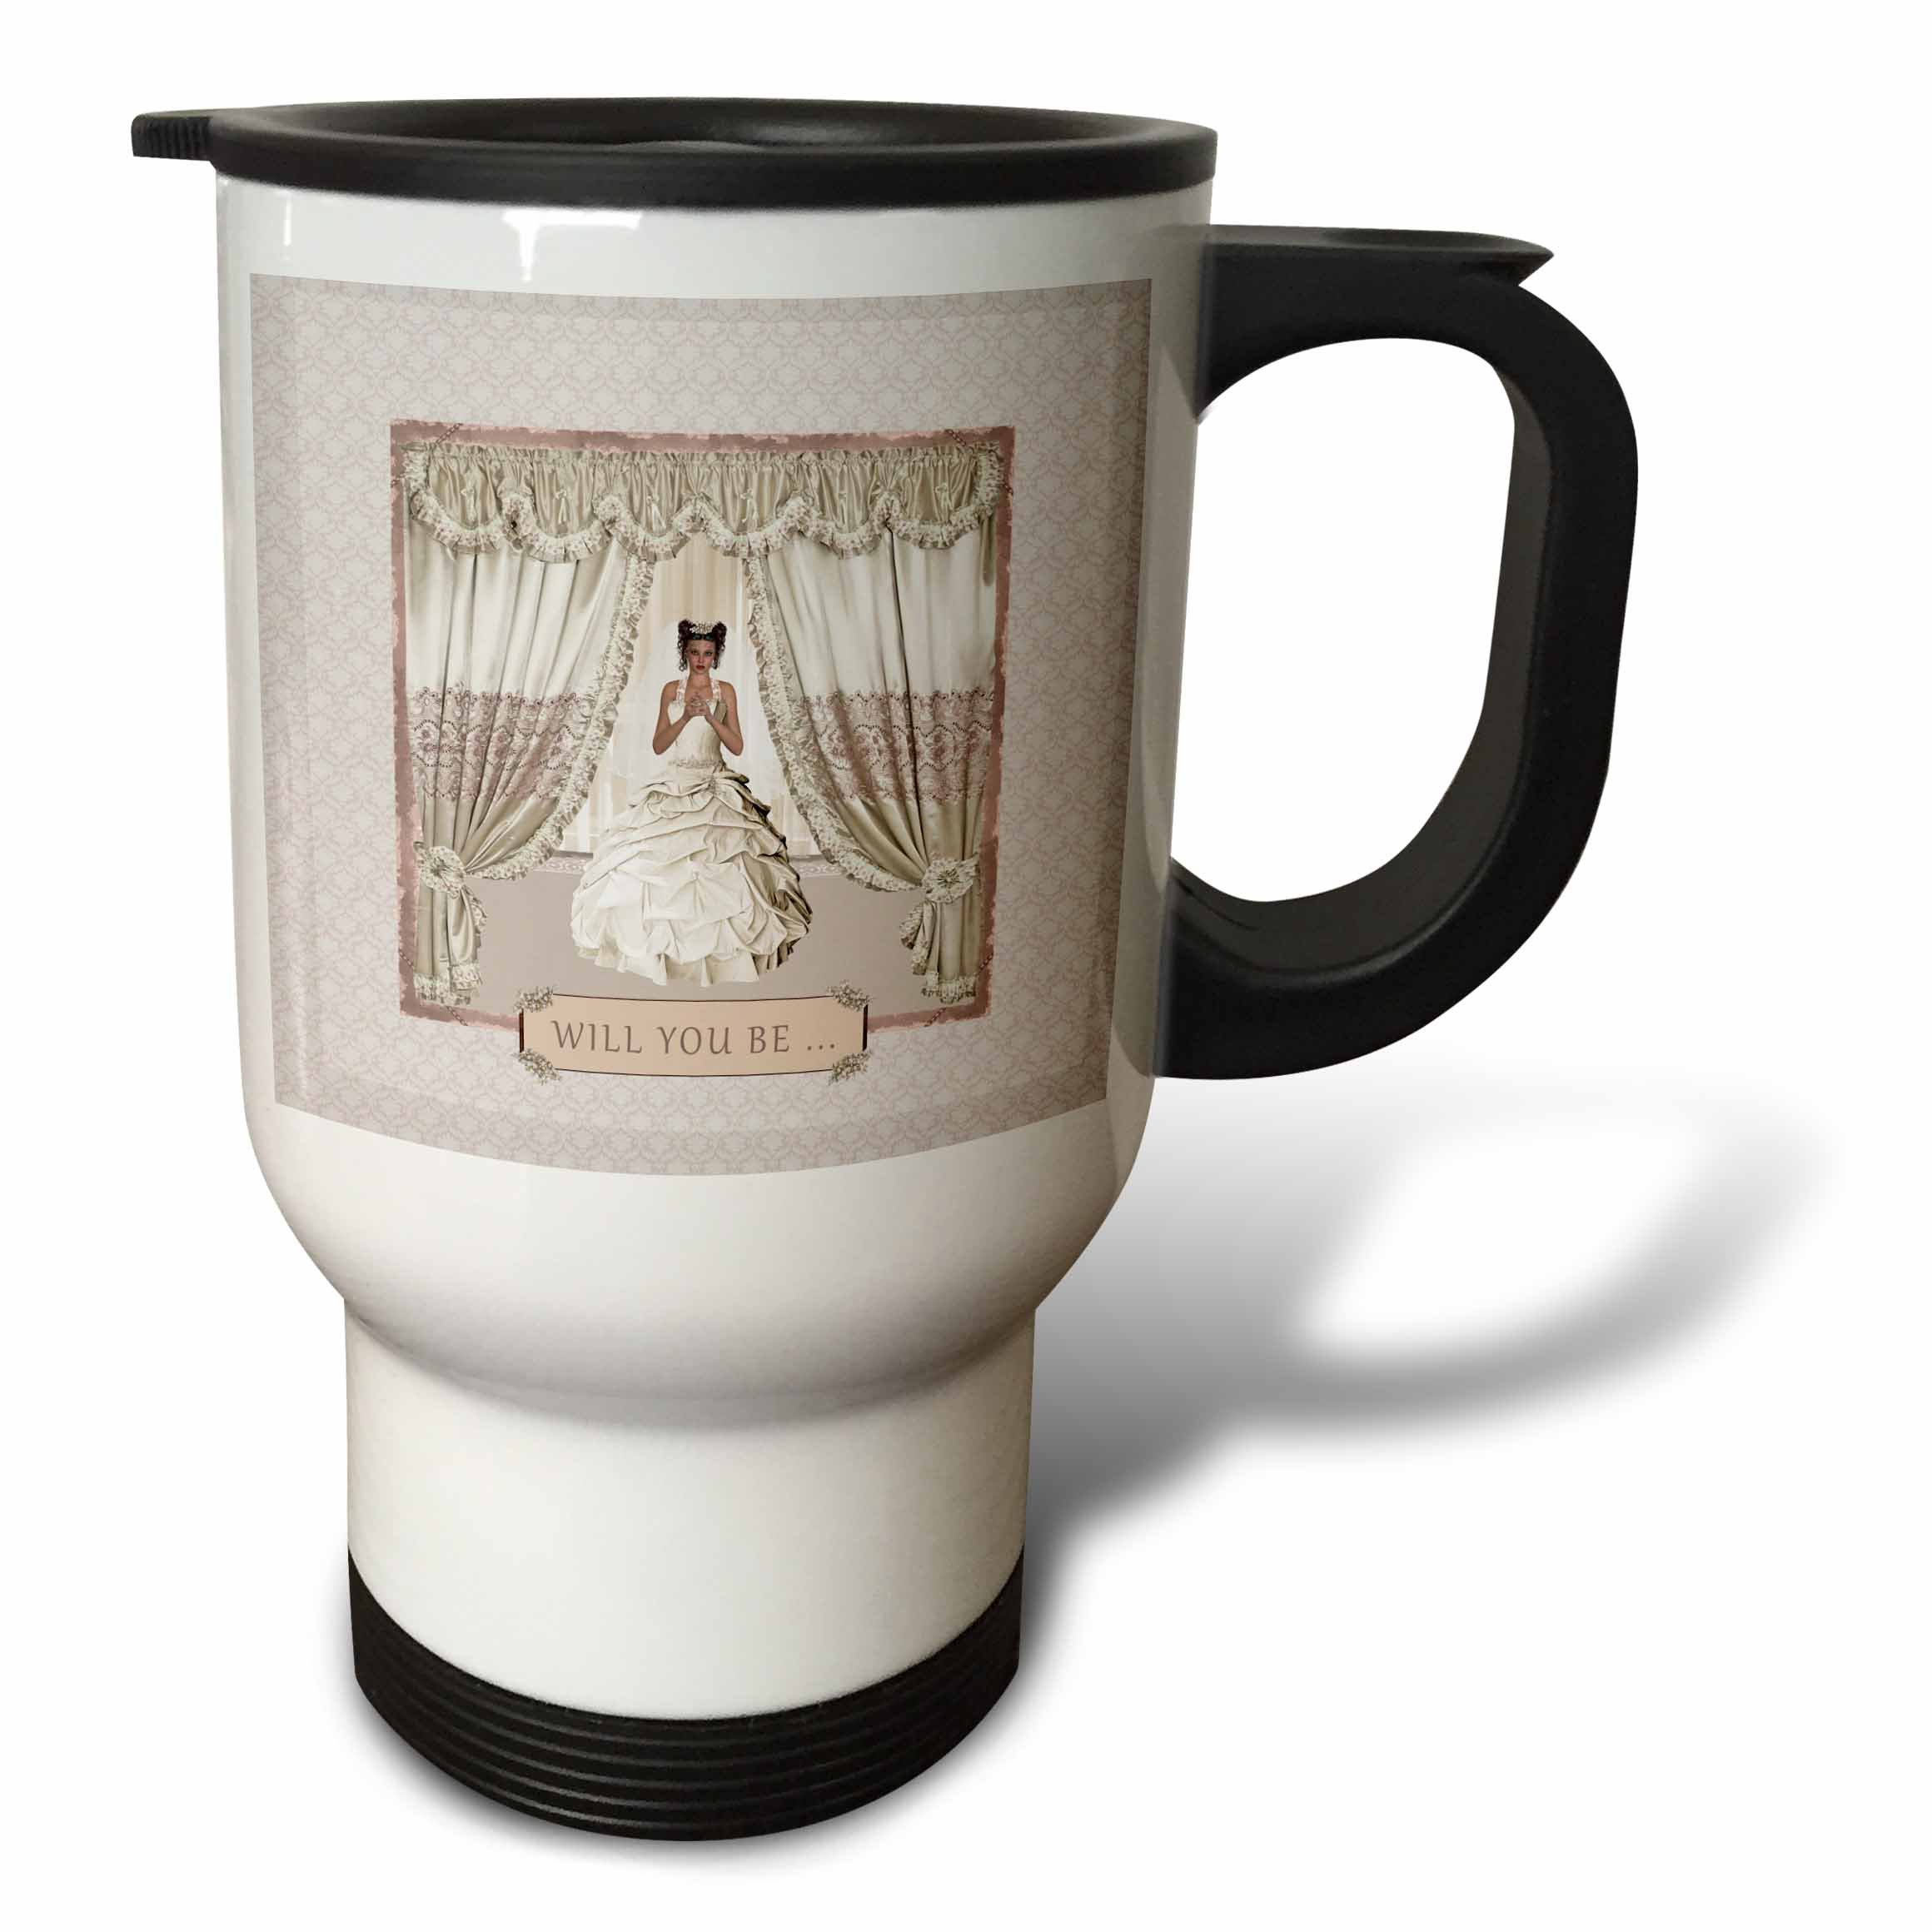 3dRose Beverly Turner Wedding Bridal Party Design - Bride in Wedding Gown, Drapes in Window, Will you be, Cream and Rose - 14oz Stainless Steel Travel Mug (tm_282067_1)